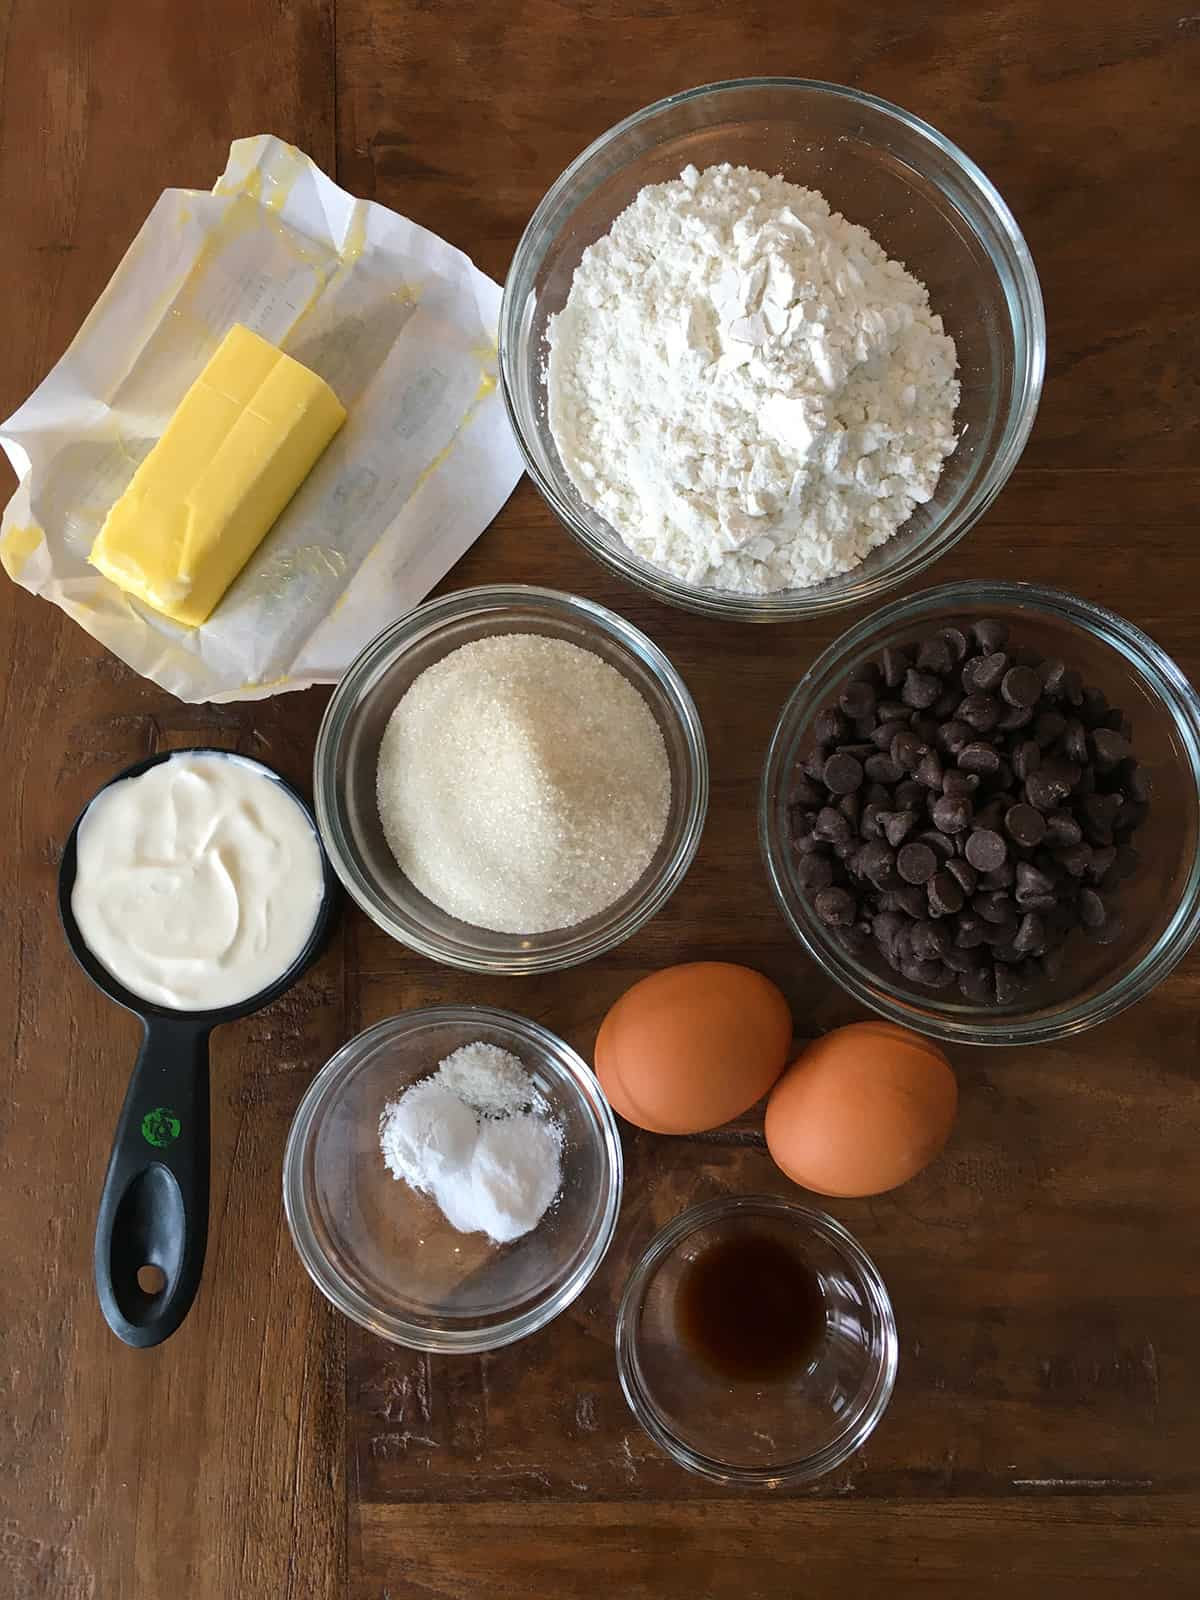 Chocolate chip muffin ingredients, some in glass meal prep bowls, on a brown wood table